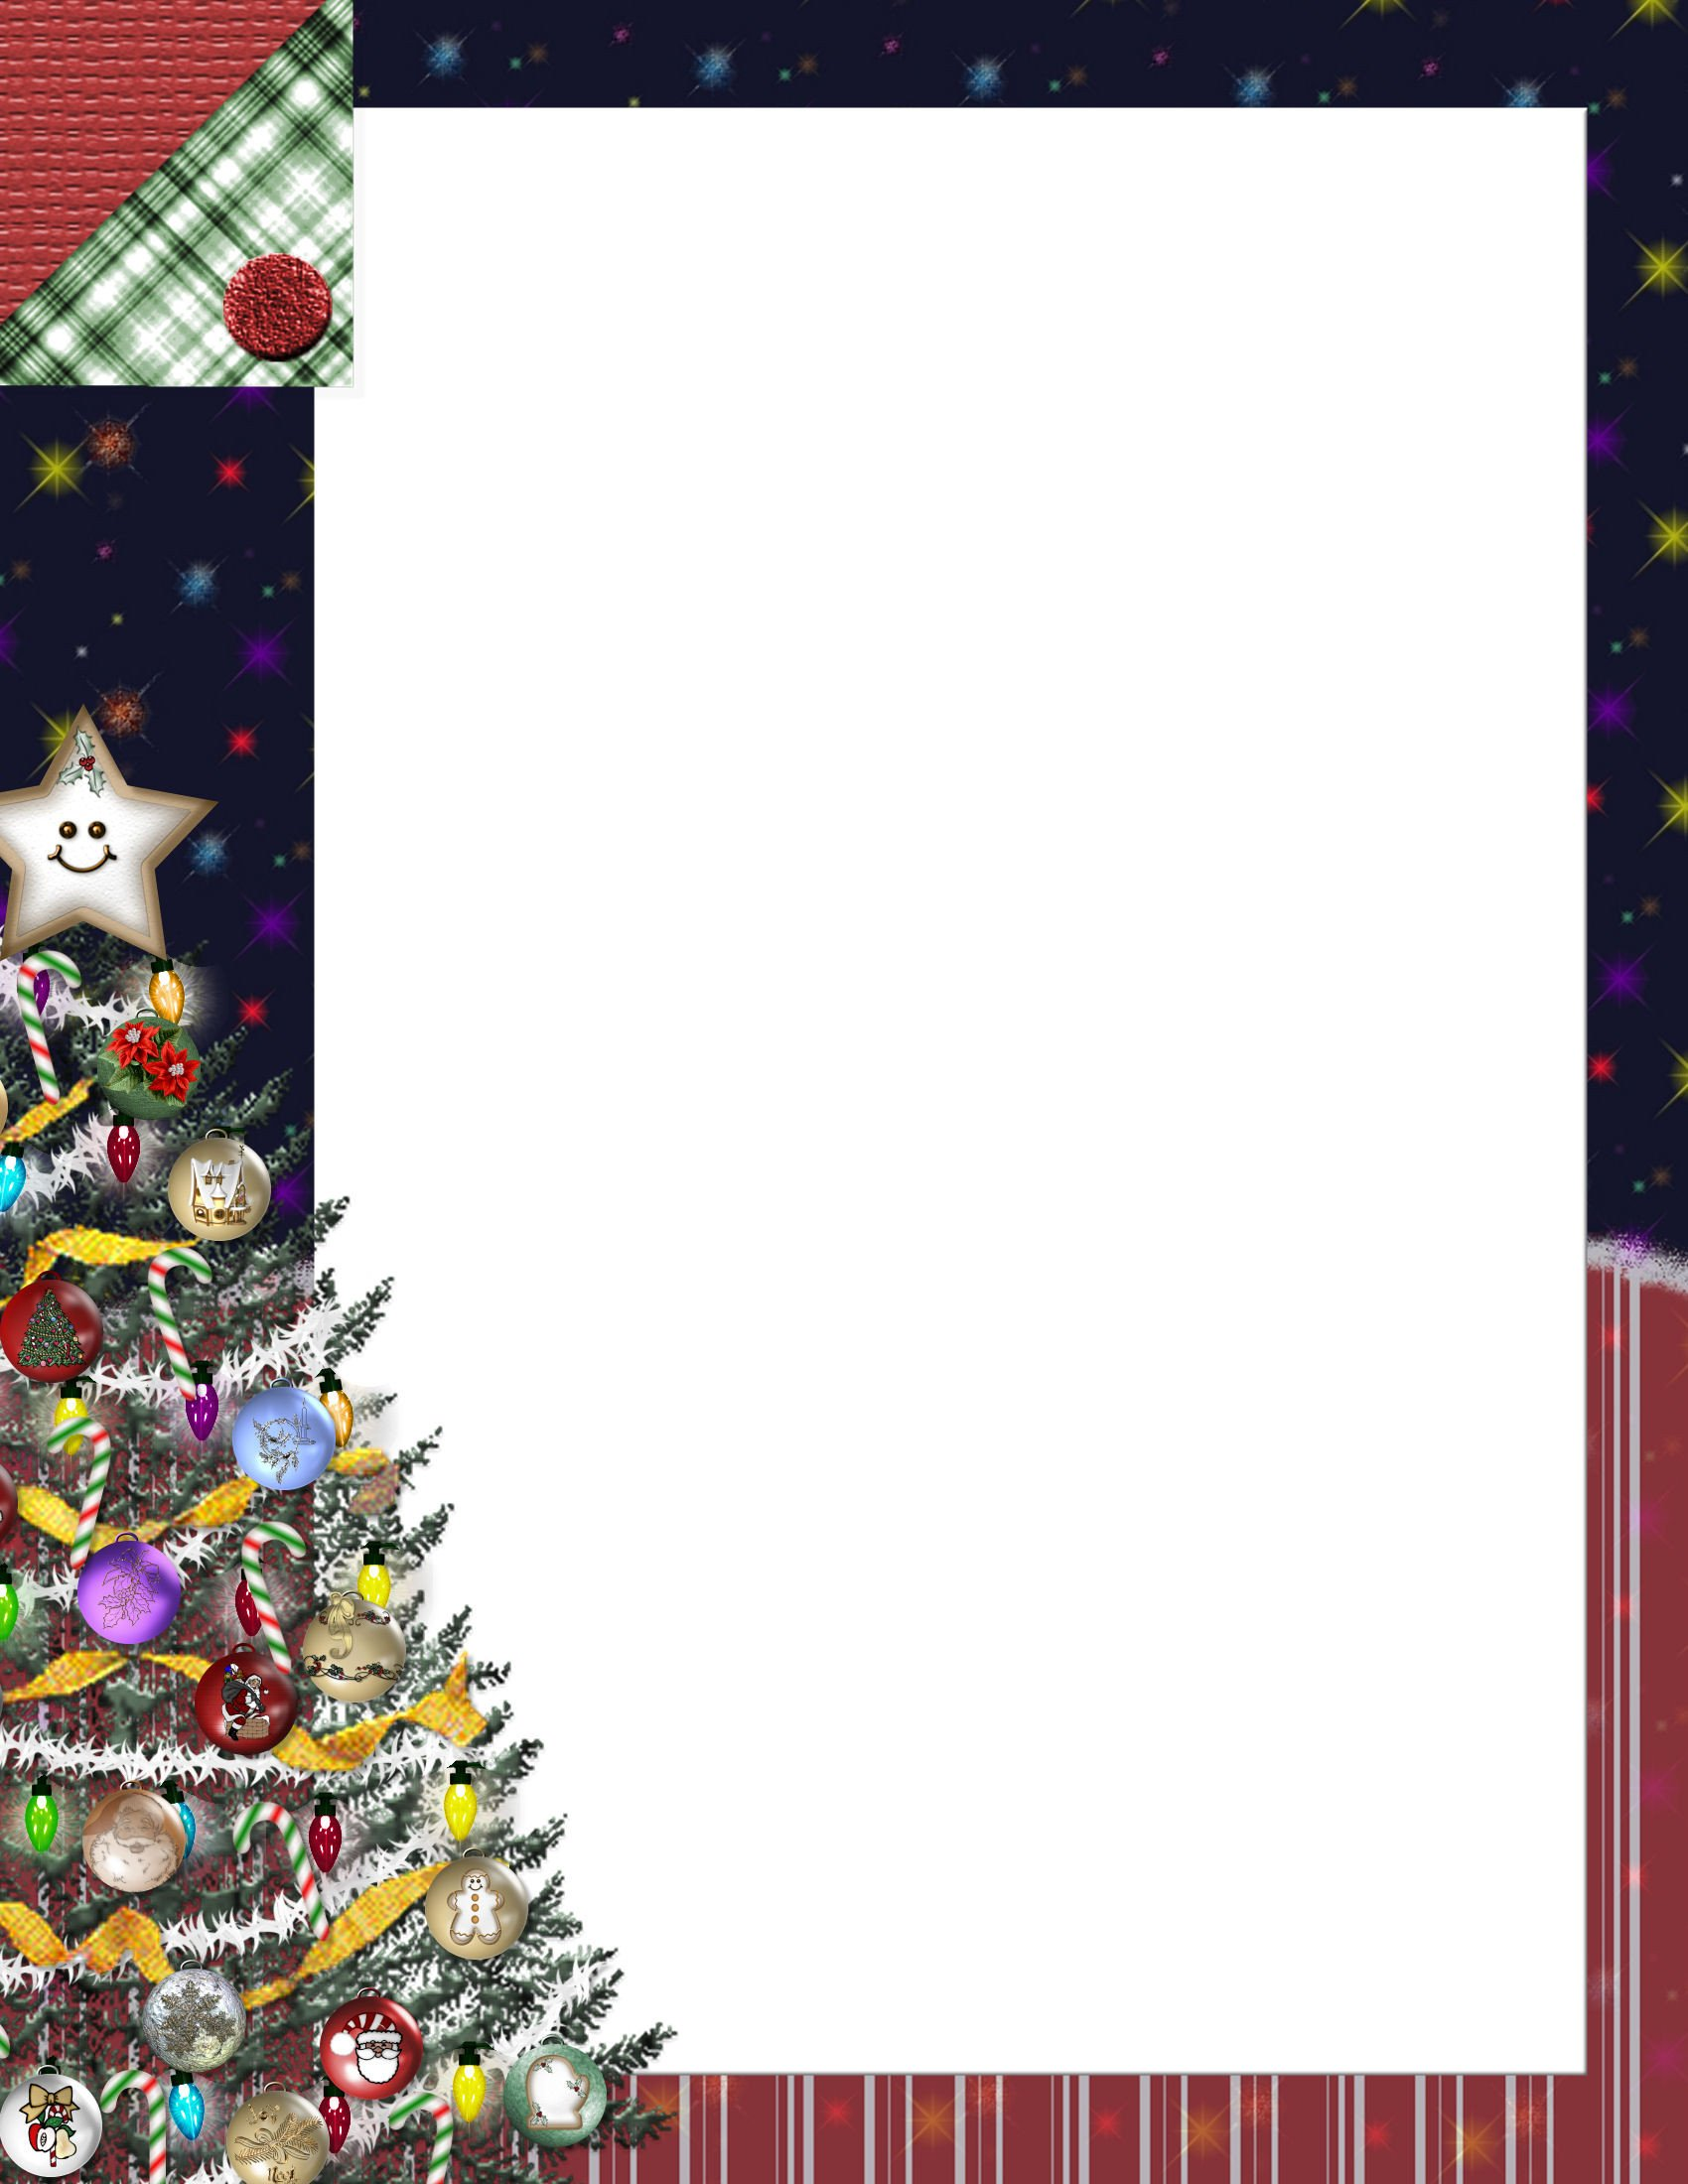 Christmas Stationery Templates Word Christmas 1 Free Stationery Template Downloads